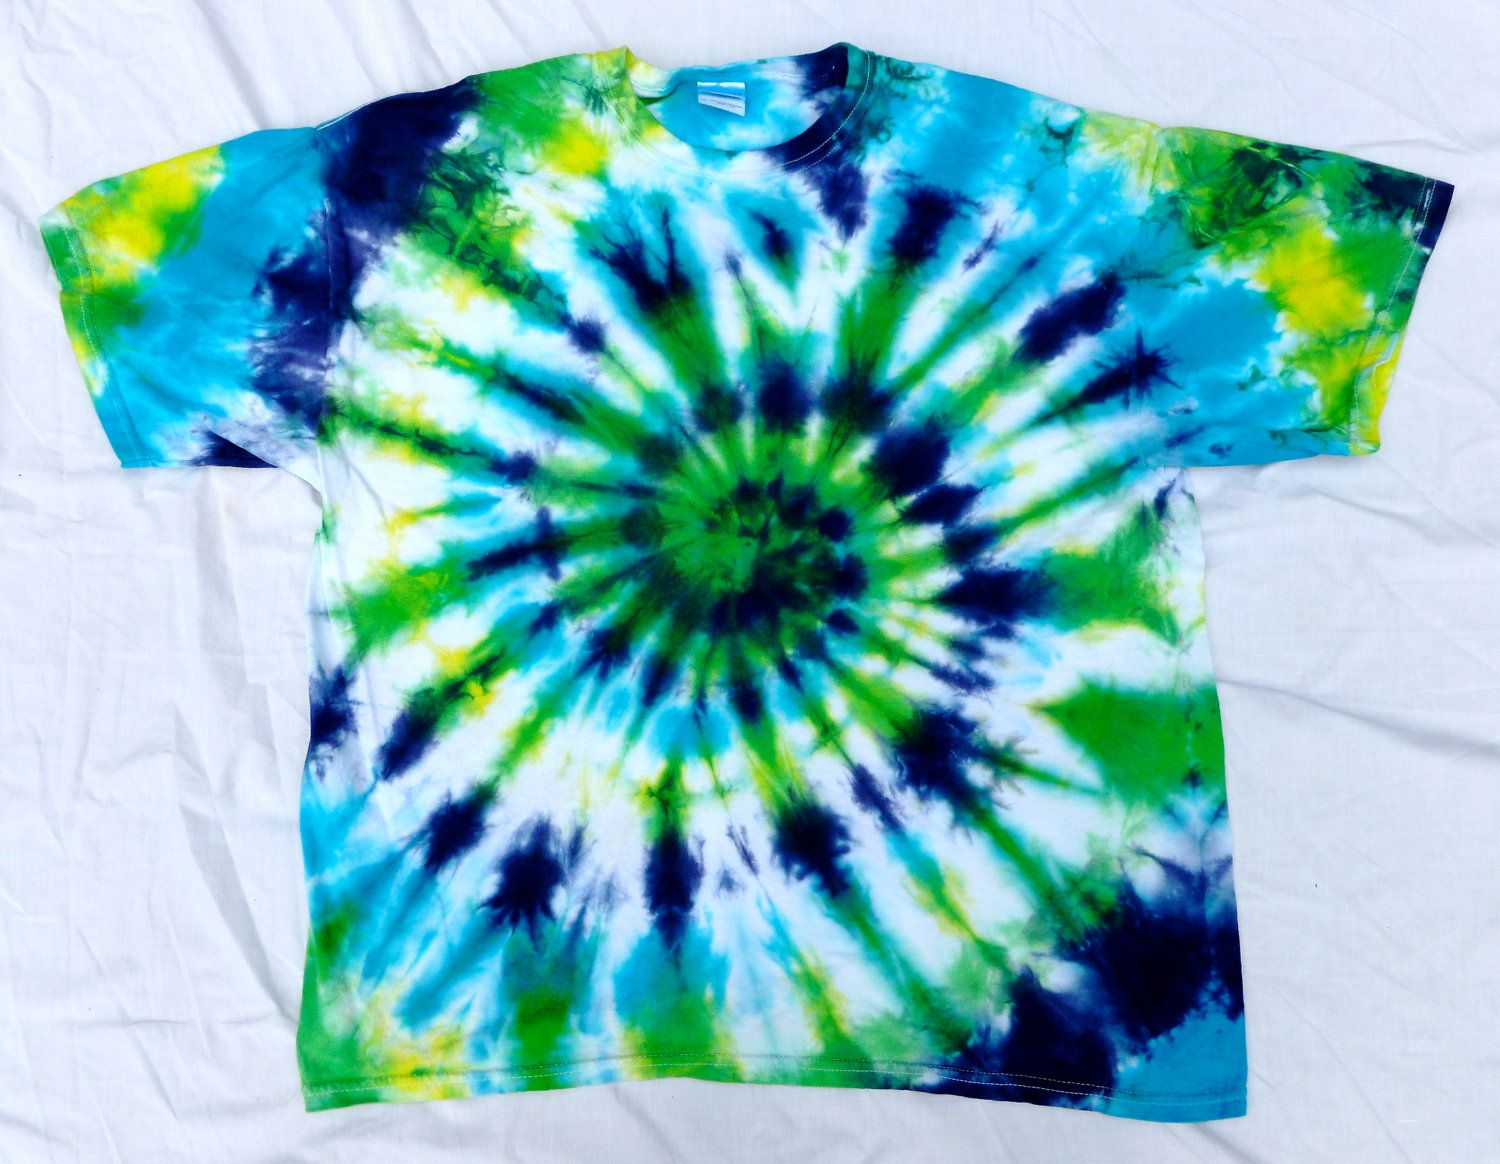 3a6dafb46d73 Blue Green And Yellow Tie Dye Shirts Photos | Tie Dye | Blue tie dye ...